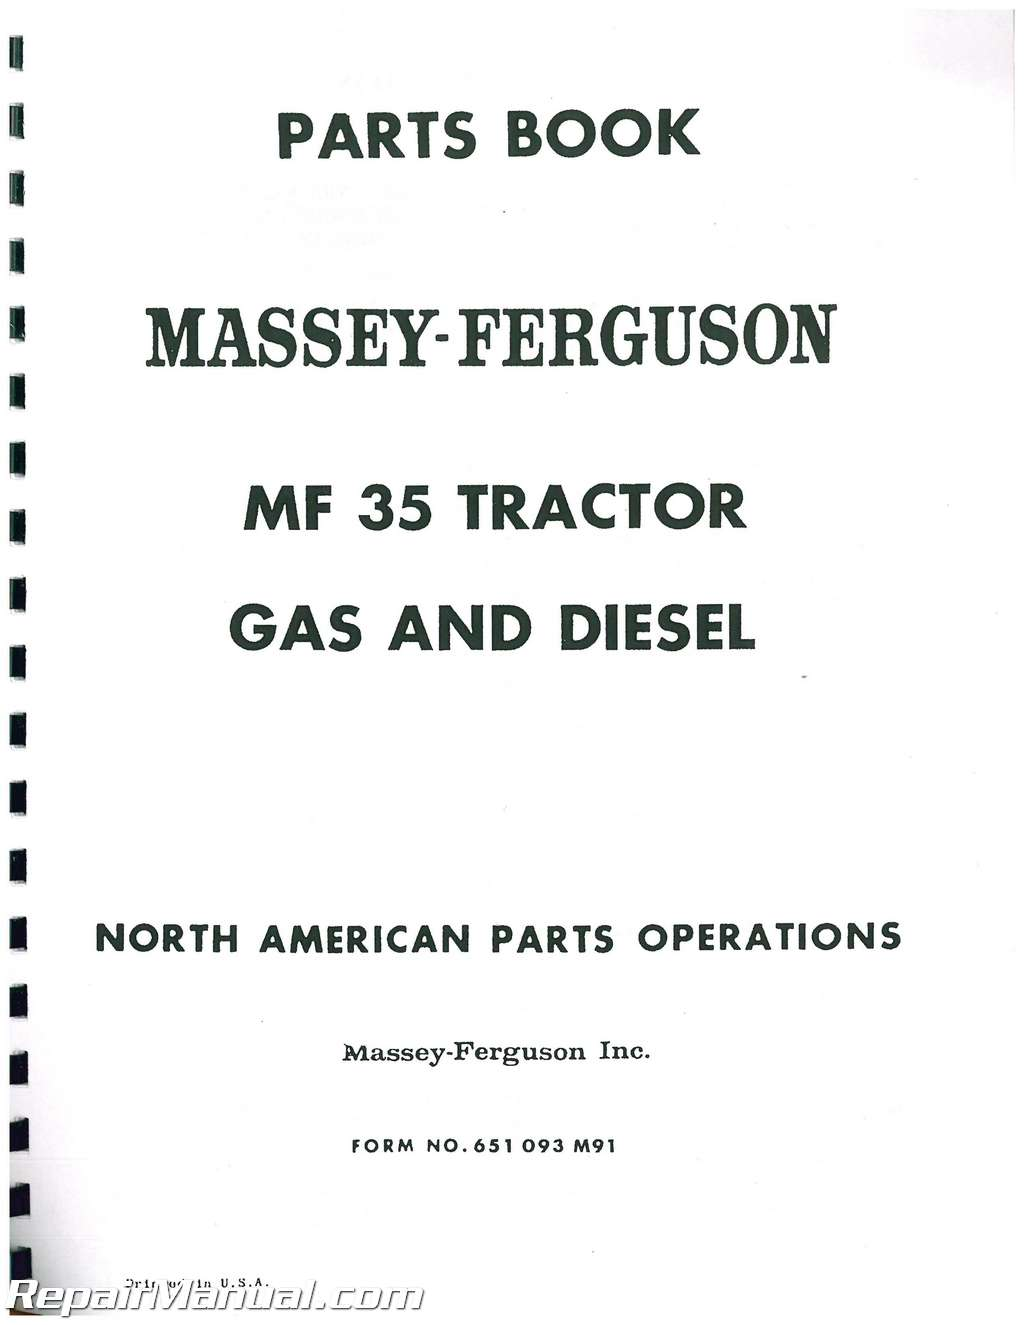 Mf35 Wiring Diagram 19 Images Diagrams Ferguson T20 To35 Massey Harris Mf 35 Gas Diesel Tractor Parts Manual 001resize